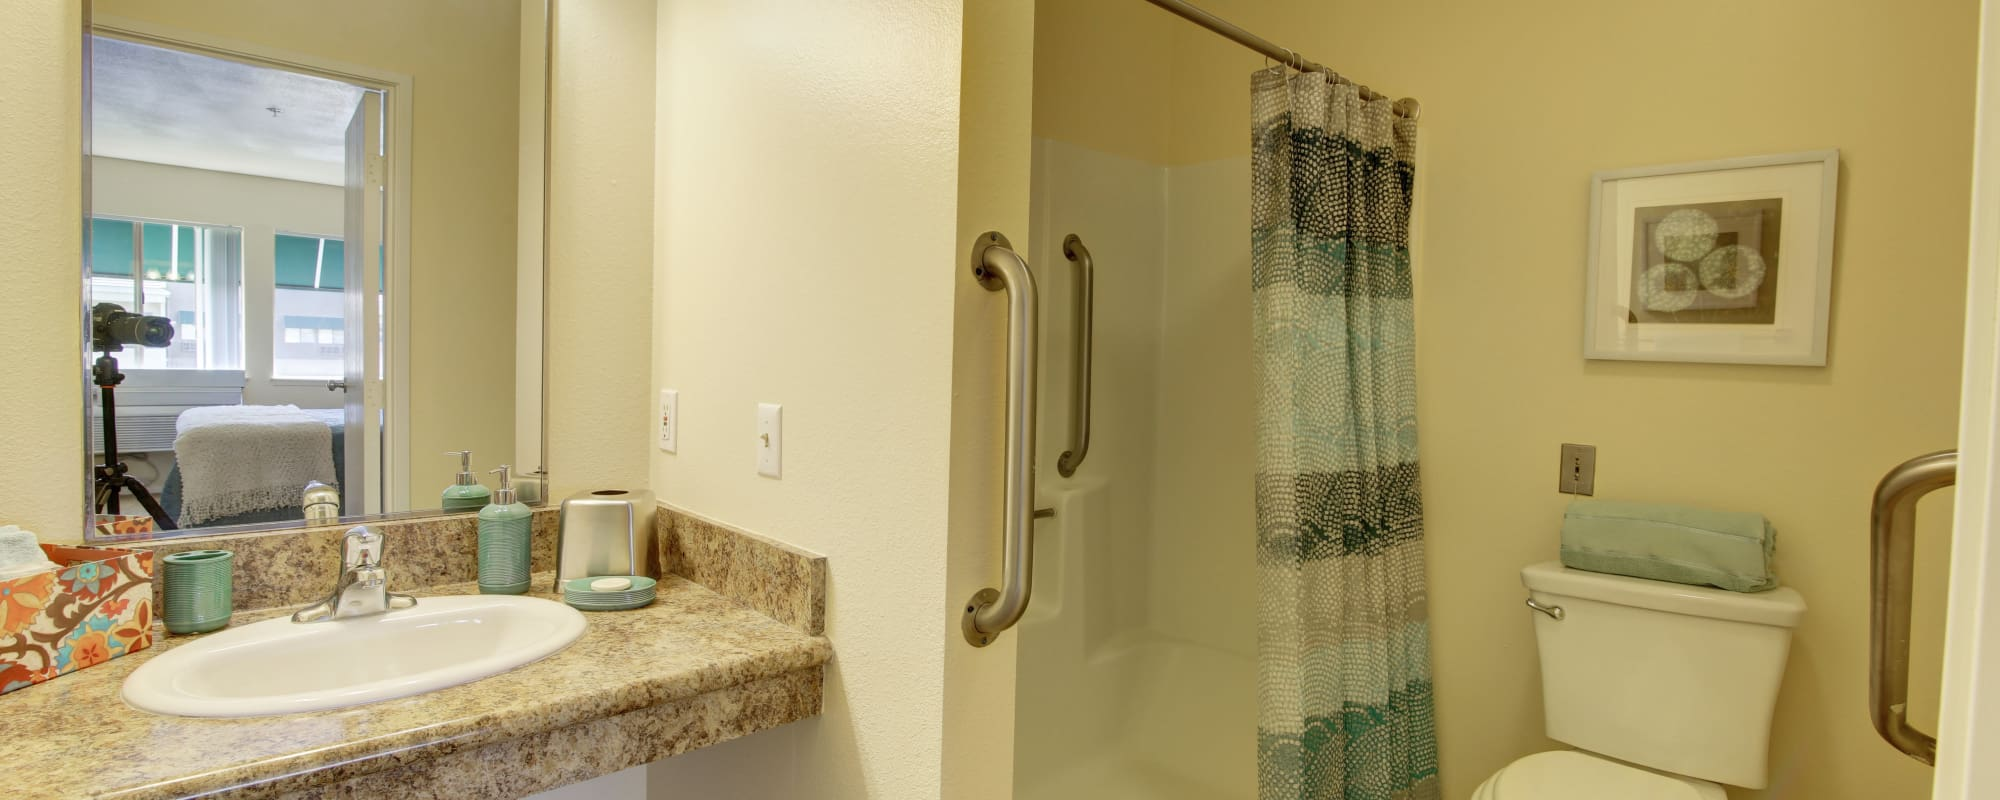 Bathroom at Citrus Place in Riverside, California